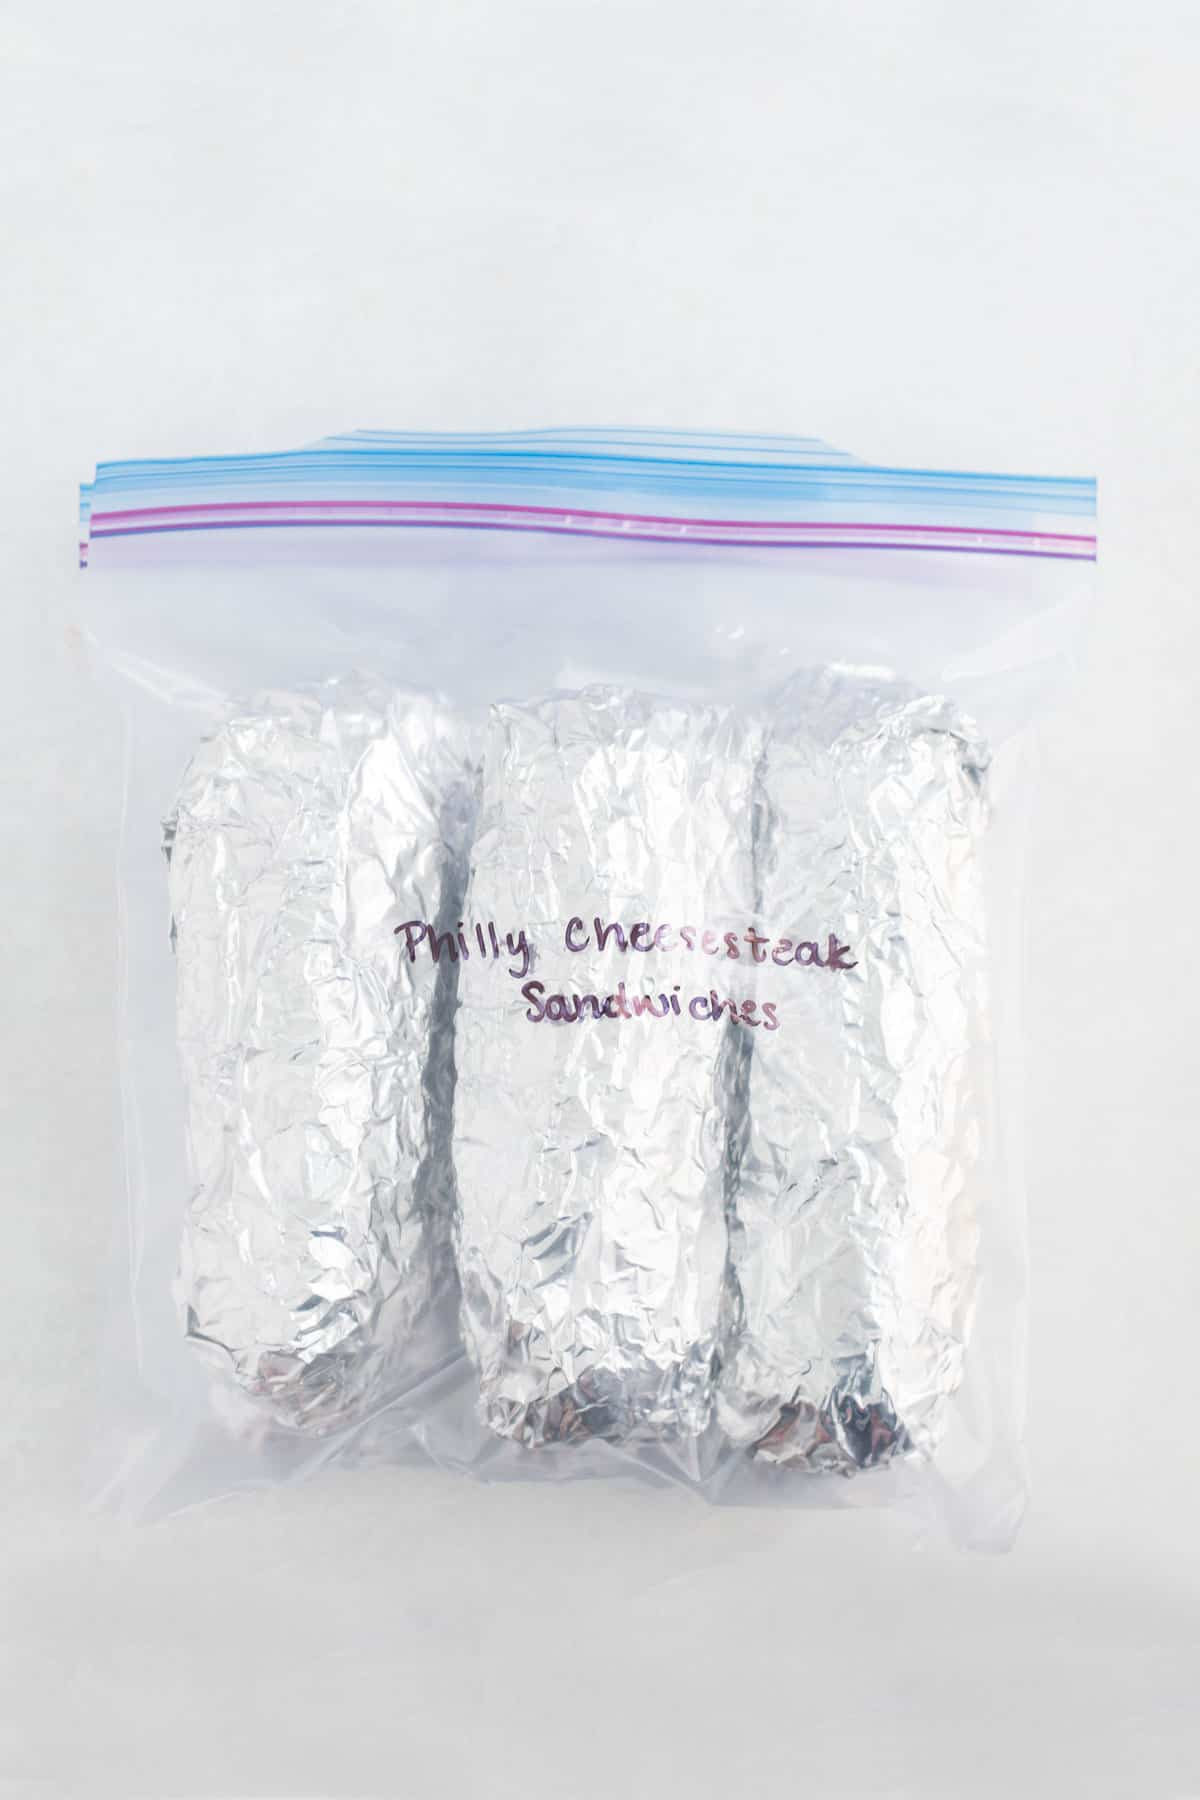 A zippered freezer bag with 6 foiled wrapped sandwiches with the words Philly Cheesesteak Sandwiches written on it with black marker.